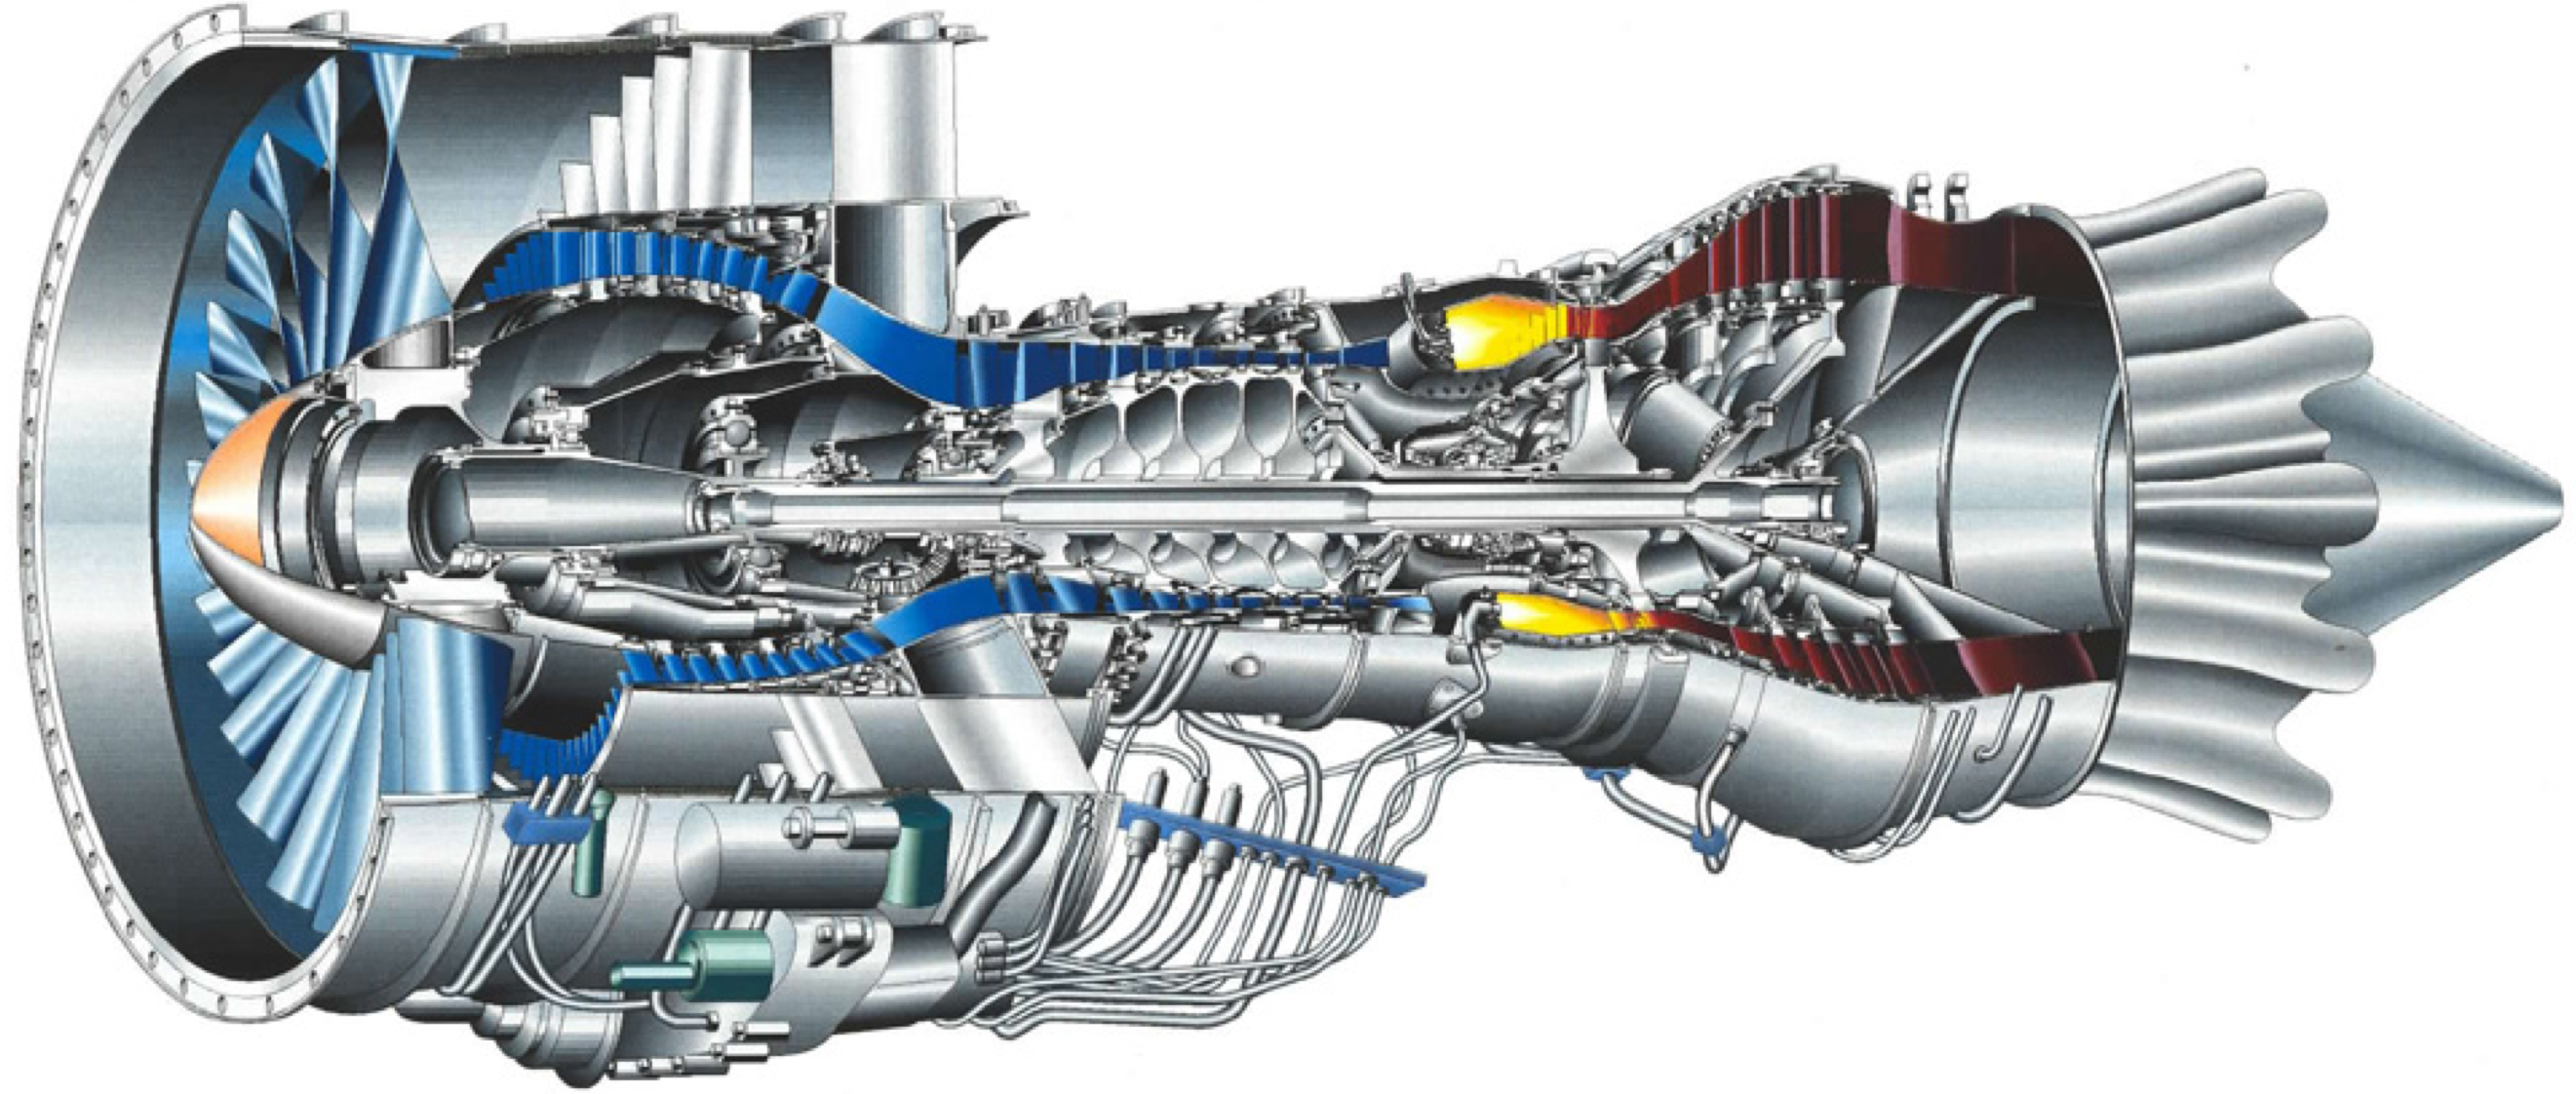 gas turbine market This study provides in-depth analyses of the global gas and steam turbine markets global revenue and order forecasts, drivers and restraints, competitive analyses.